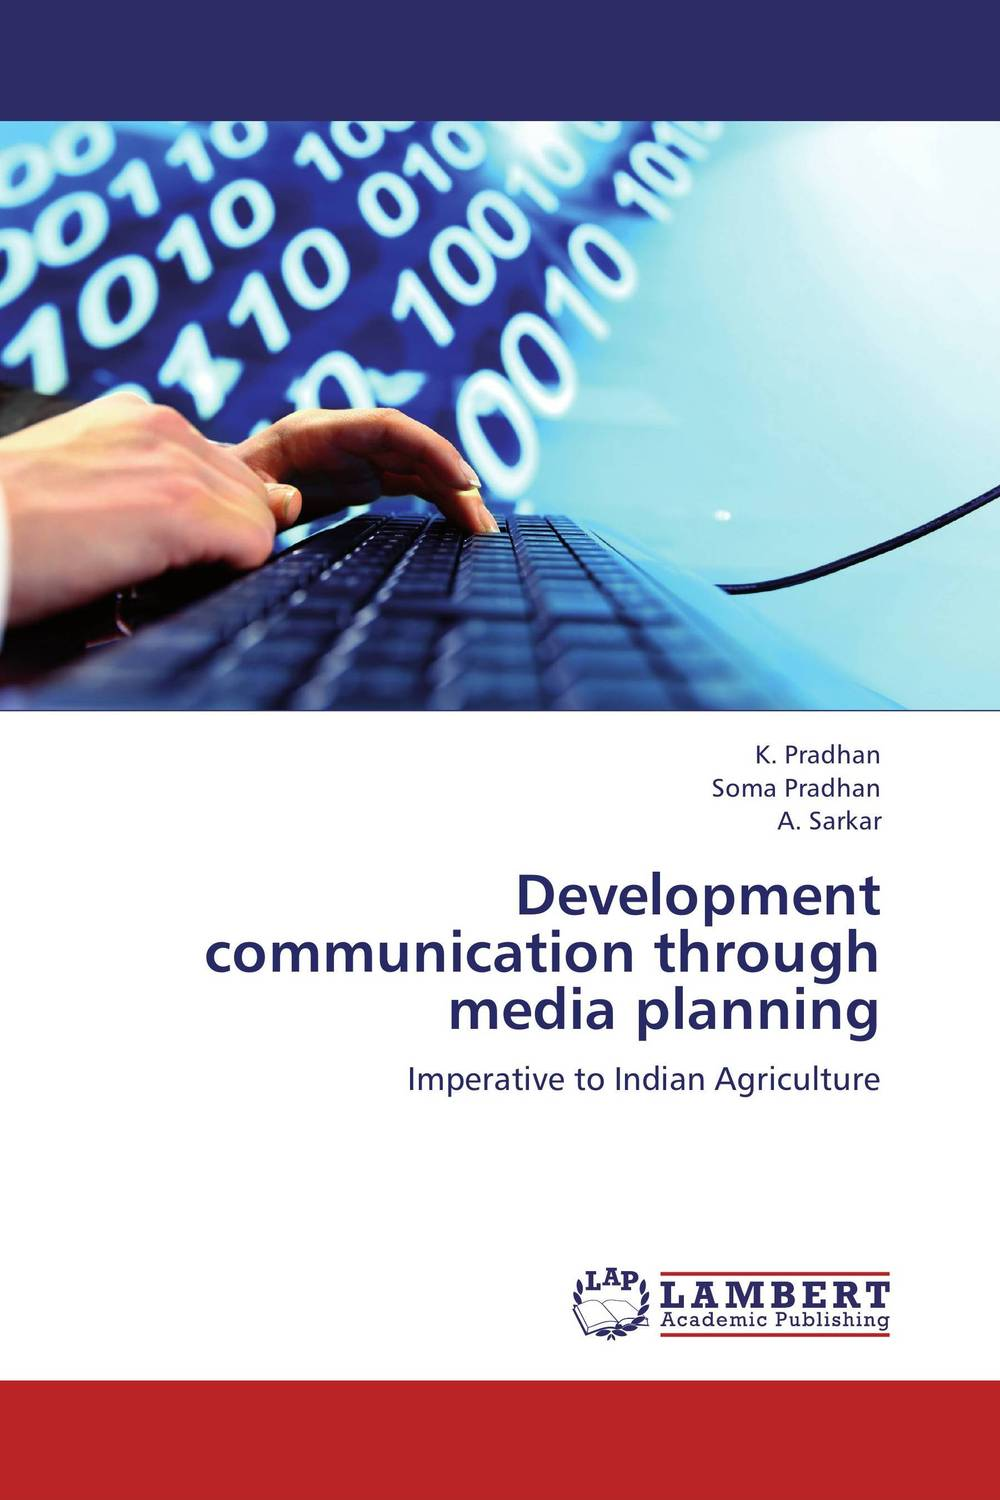 Development communication through media planning marc lane j the mission driven venture business solutions to the world s most vexing social problems